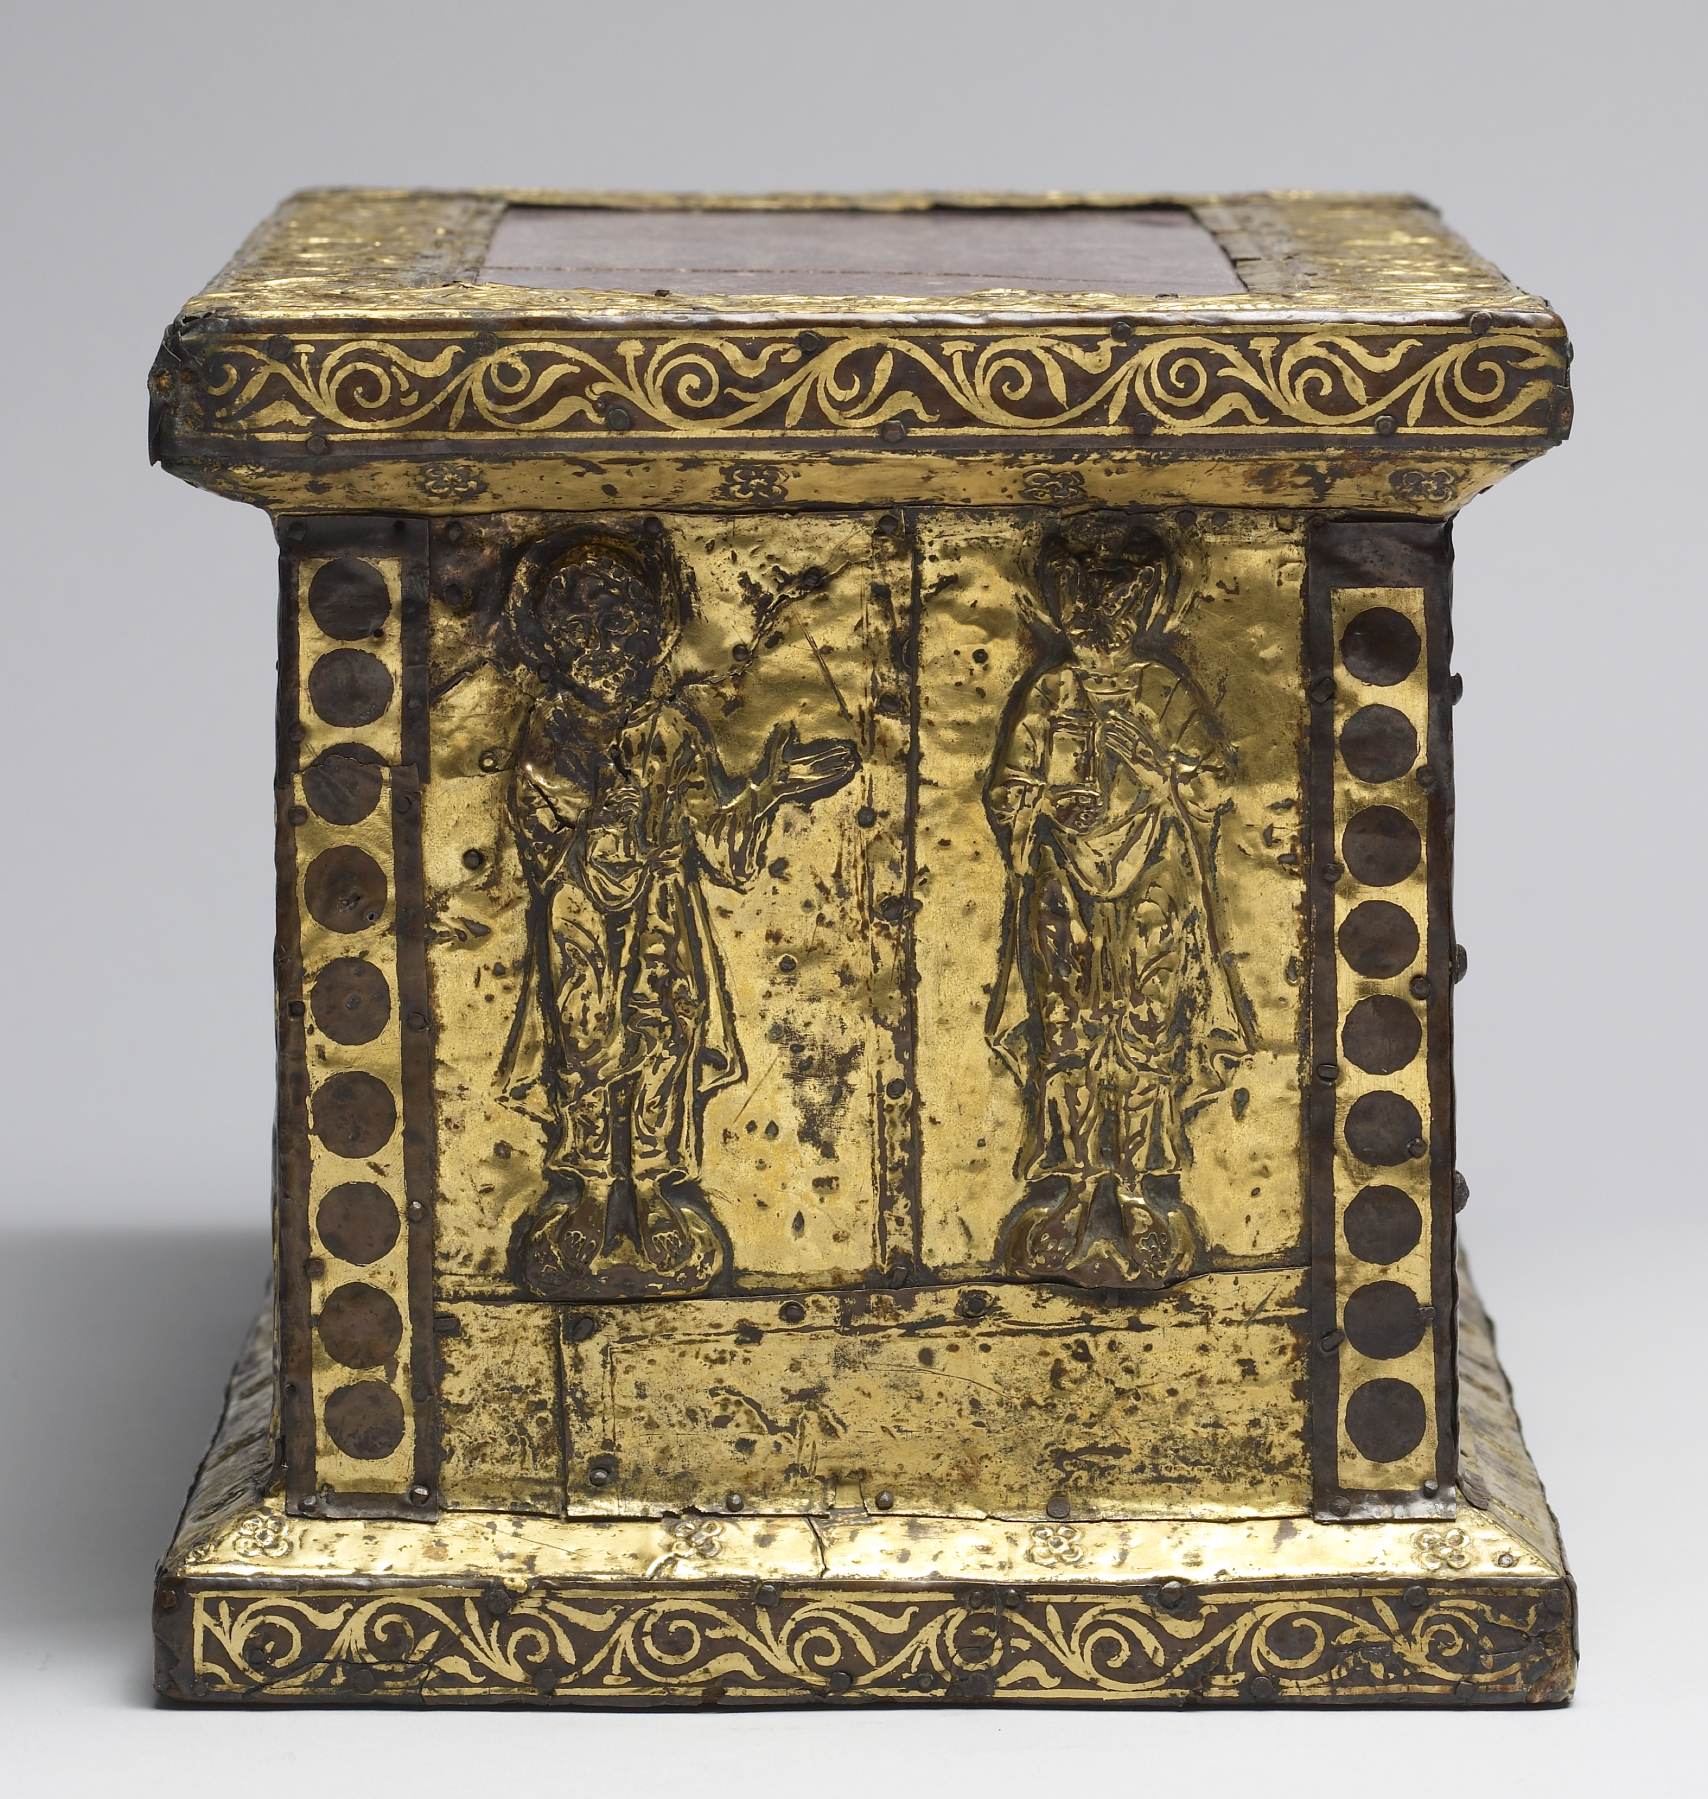 An 11th century portable altar